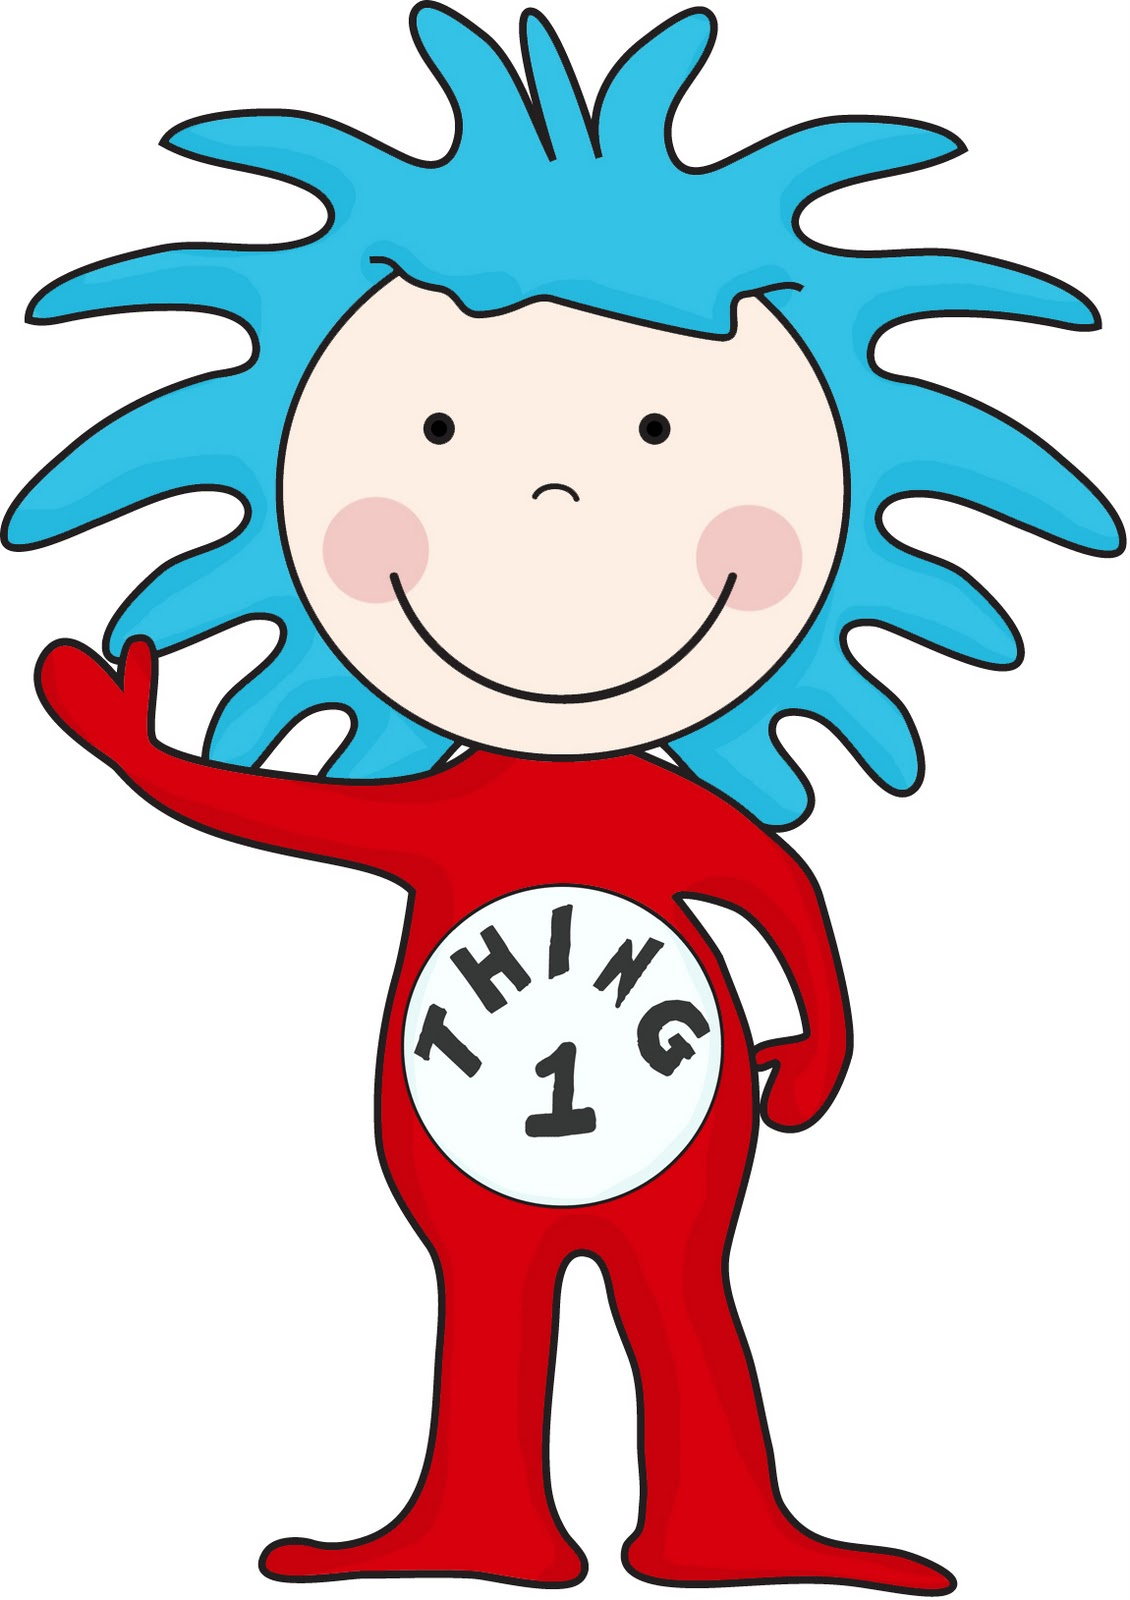 Thing 20clipart Panda Free .-Thing 20clipart Panda Free .-17